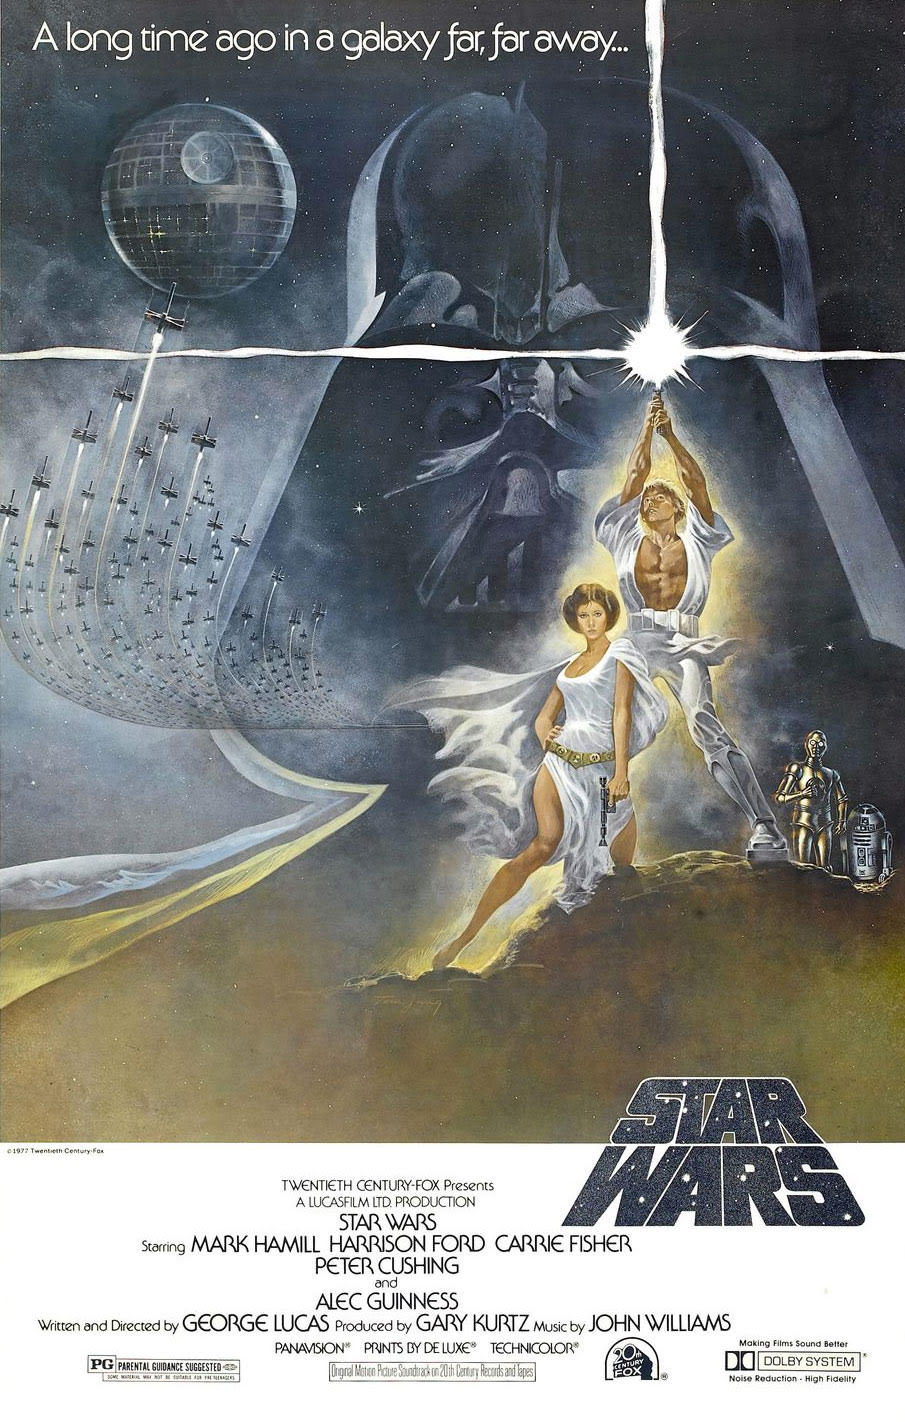 Encore Screening Star Wars Episode Iv A New Hope